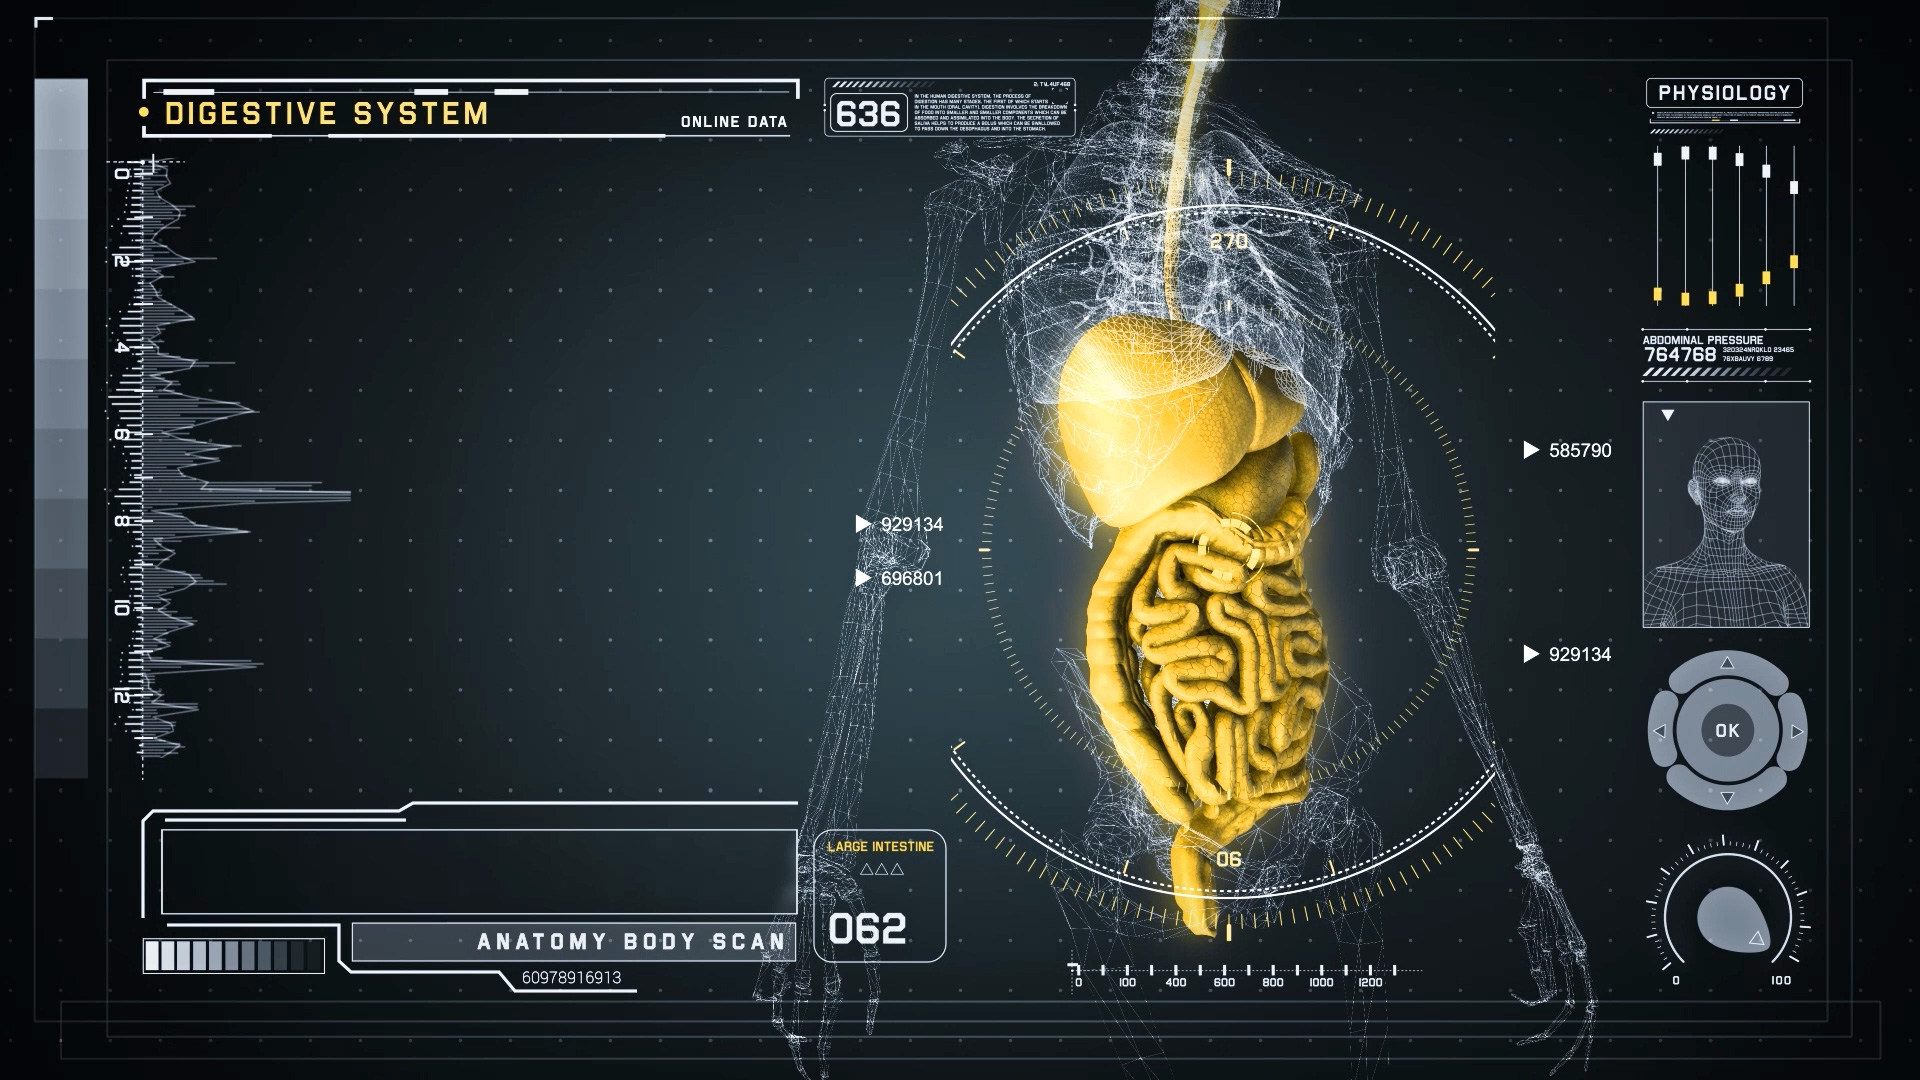 Futuristic Interface Display of Human Body Scan with Digestive ...